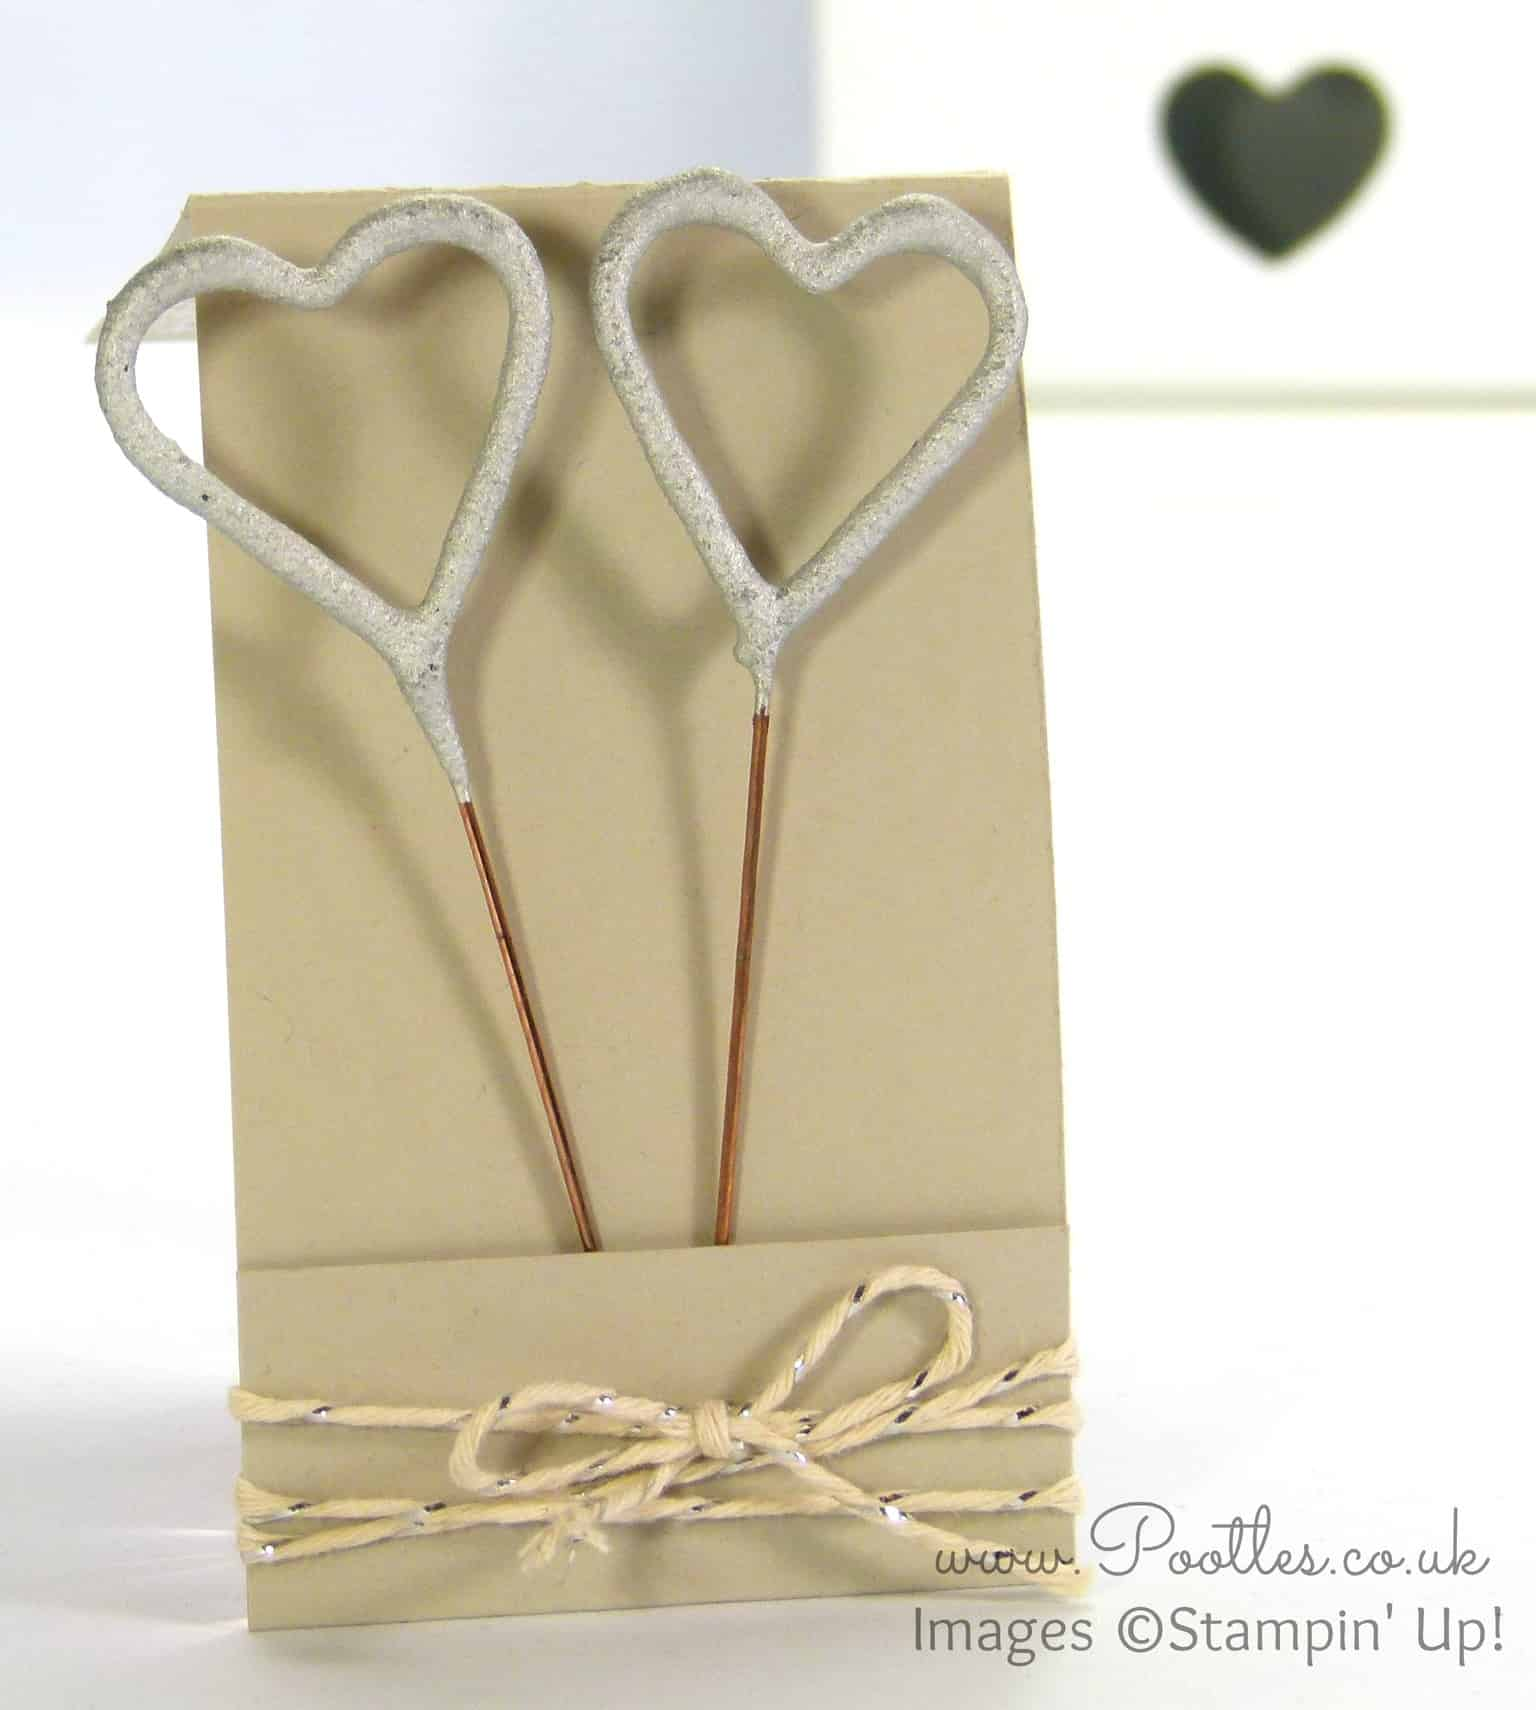 SpringWatch 2015 Sparkler Wedding Favour MatchBook Tutorial